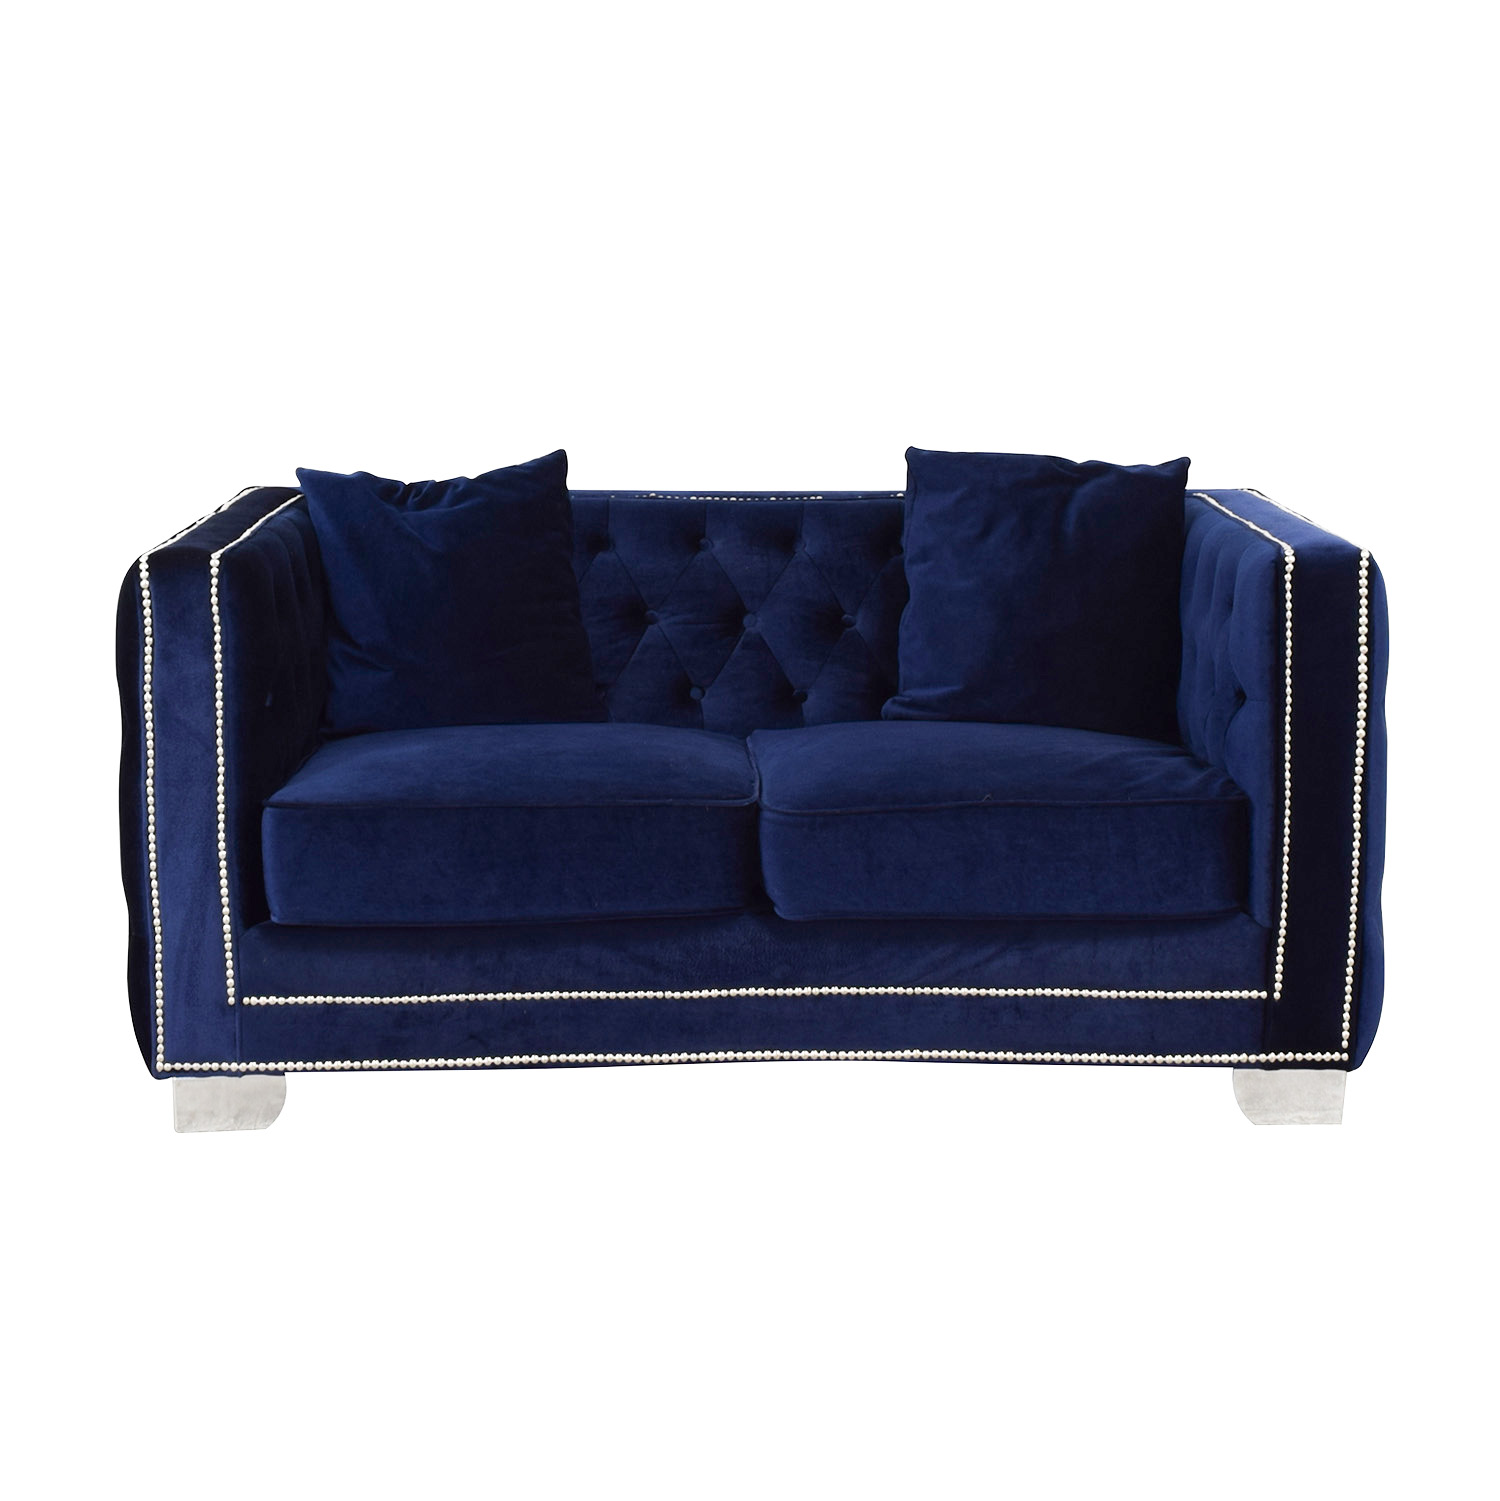 Ashley Furniture Tufted Nailhead Blue Two-Cushion Loveseat dimensions